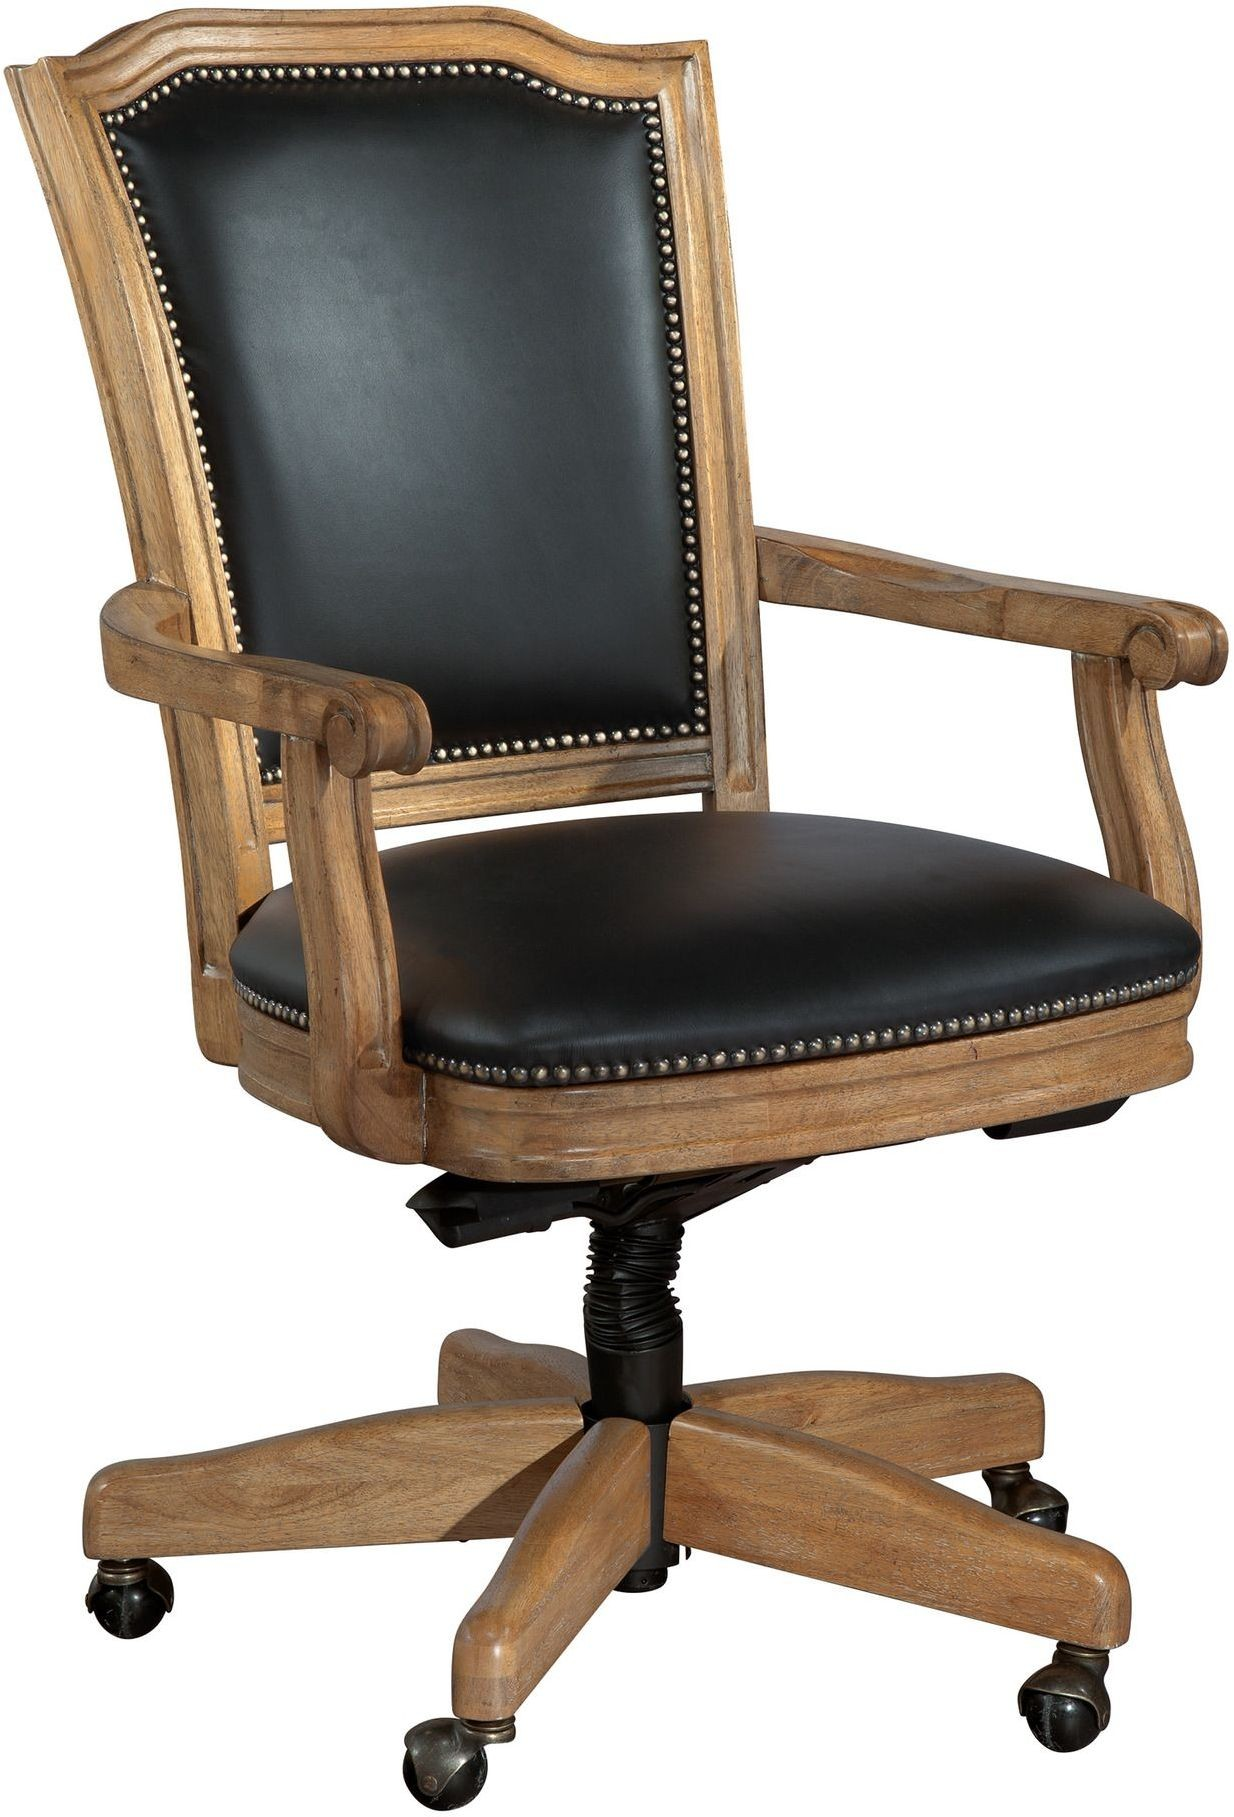 Wood Office Furniture Product ~ Black wood frame office chair from hekman furniture